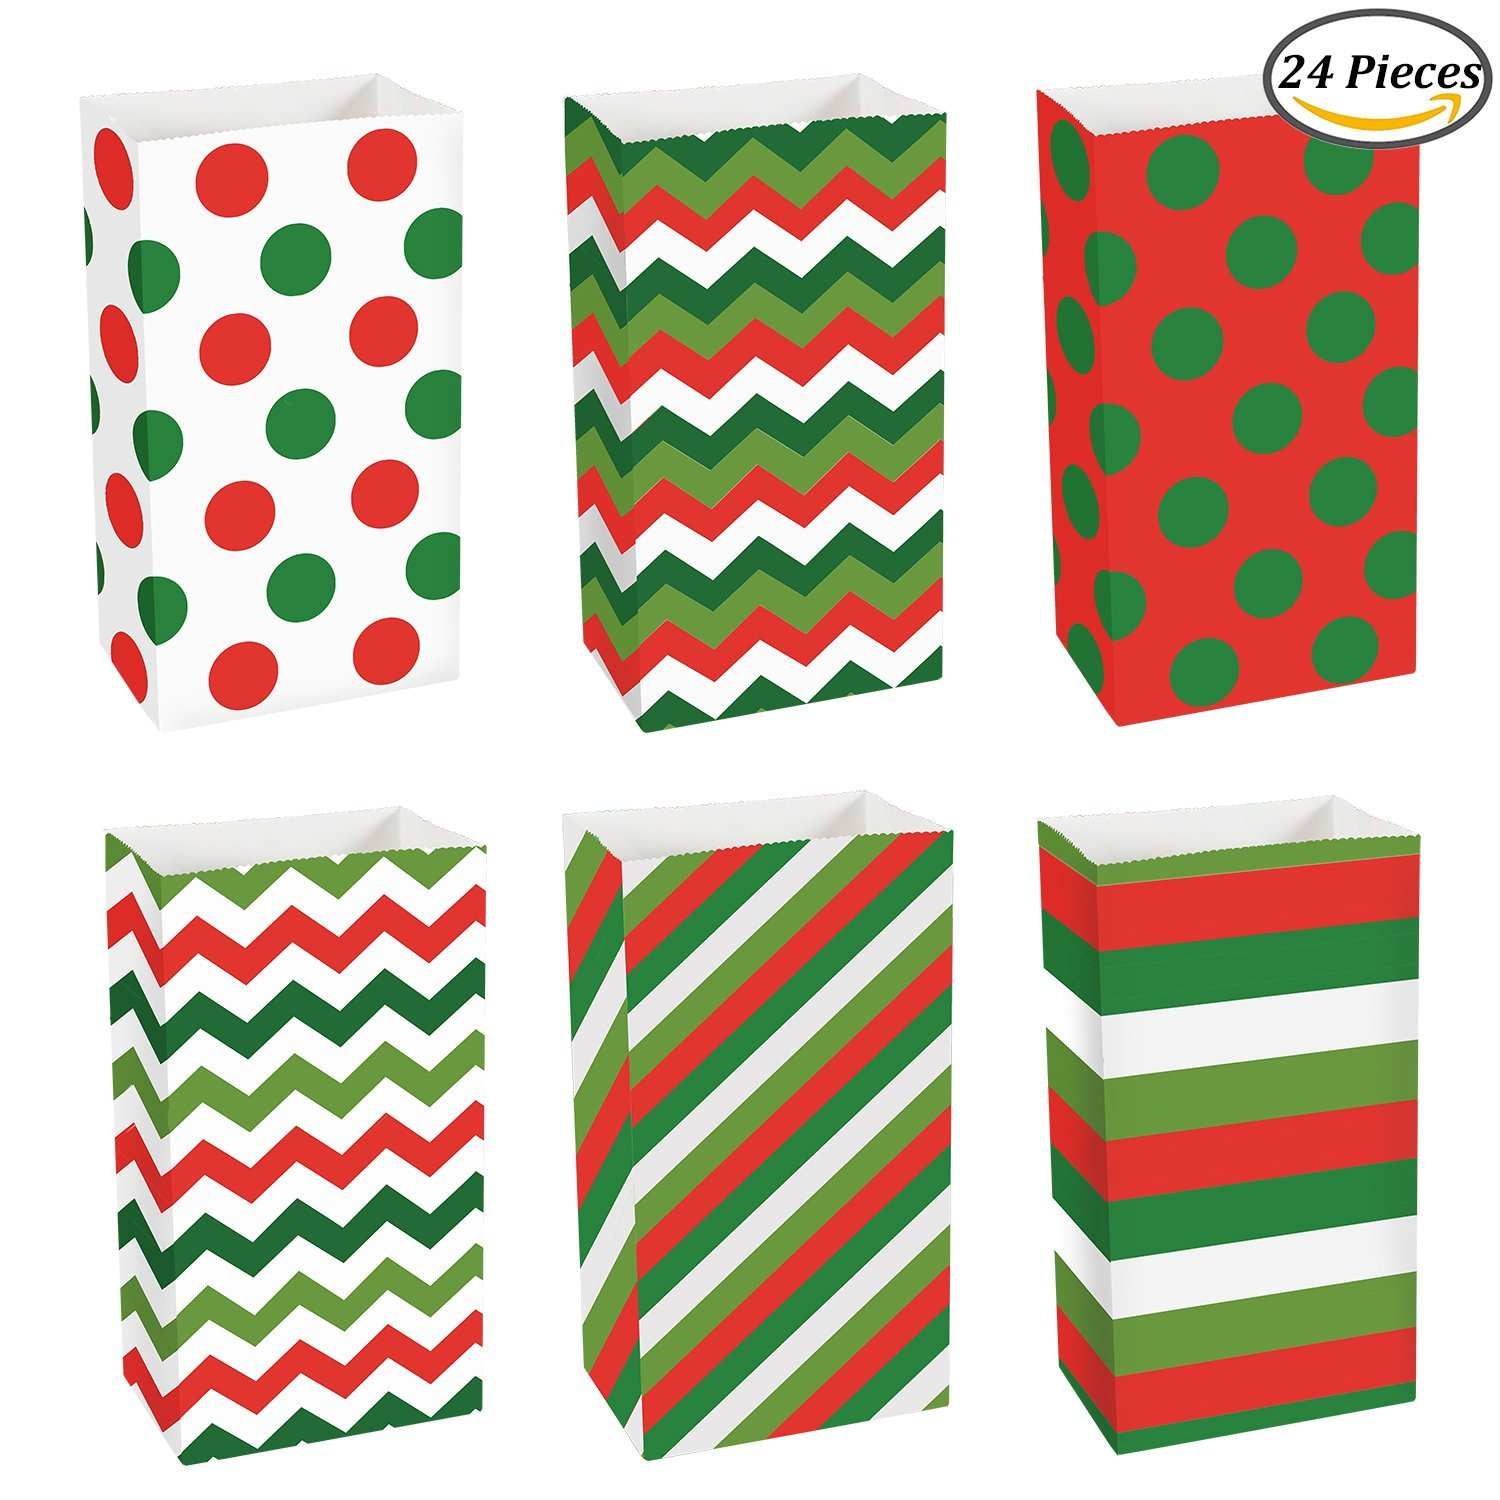 Coobey 24 Pieces Christmas Paper Bags Kraft Gift Bag Grocery Party Bags Craft Paper Bags Flat Bottom Treat Paper Bags Party Favor, 6 Designs